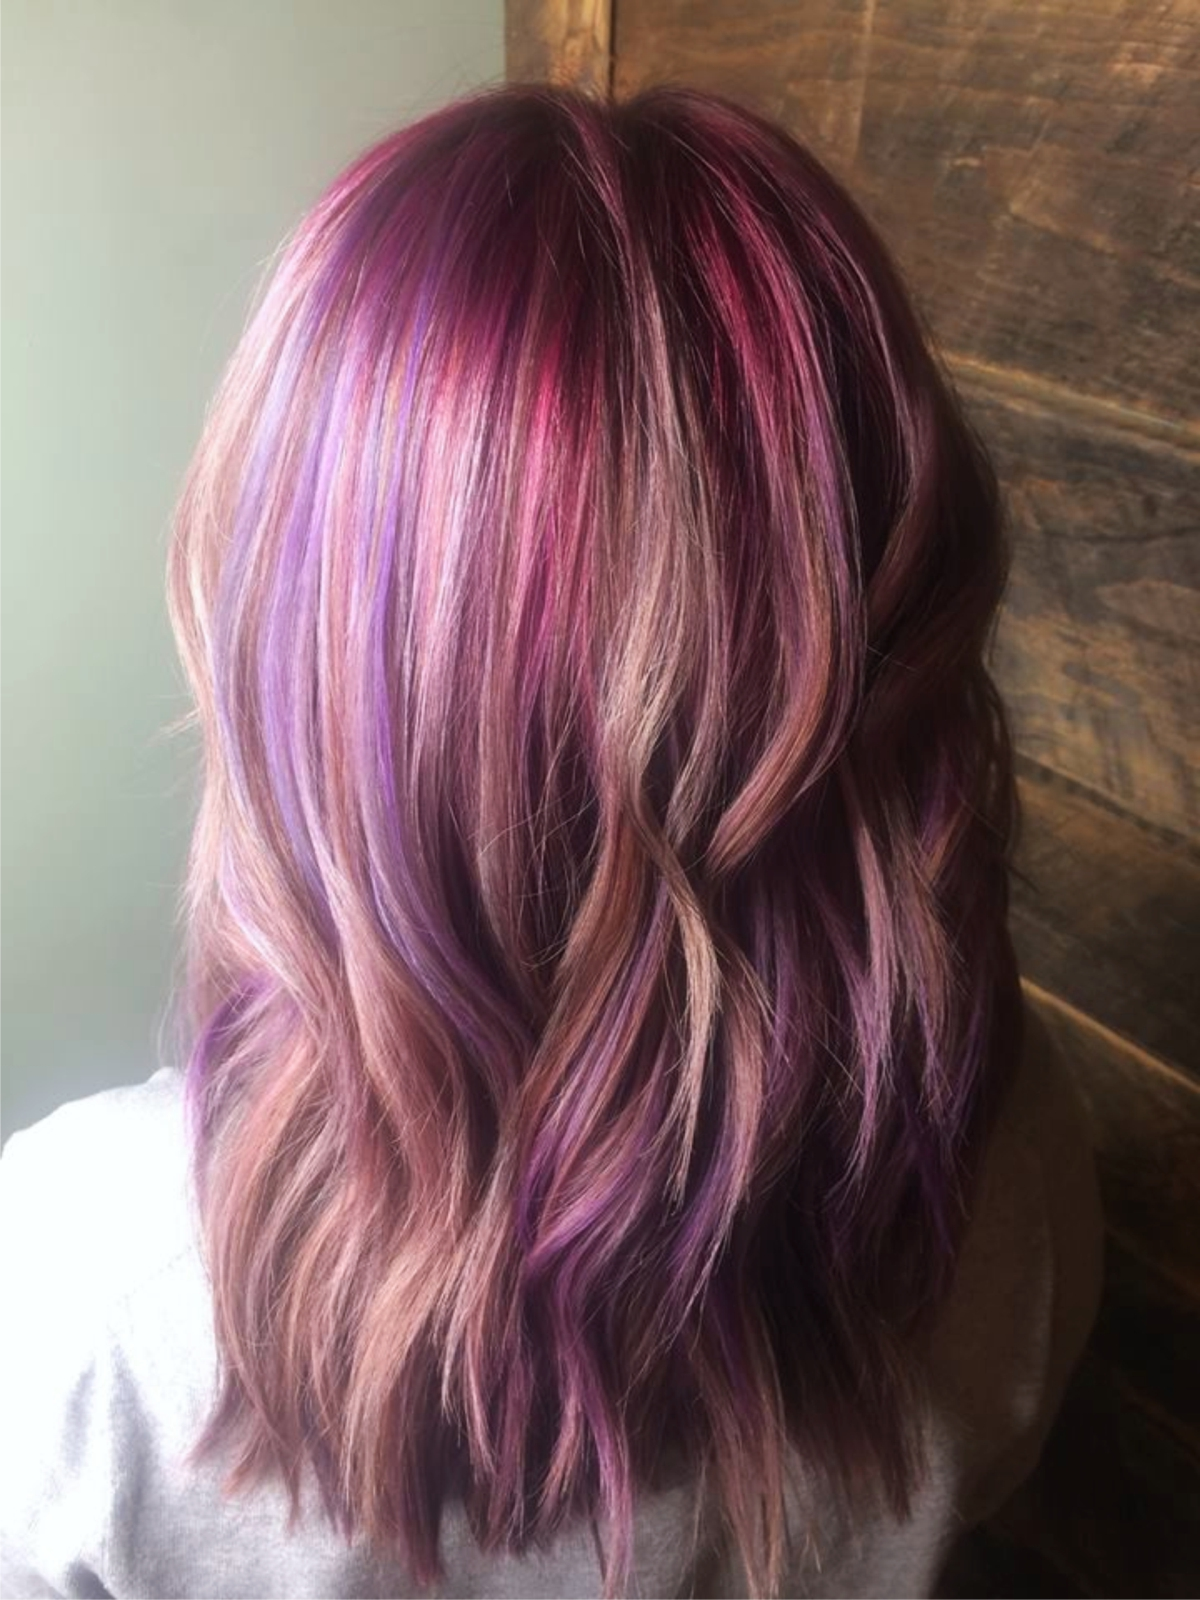 Hair Color/Highlights - Hair Color & Blow Dry - $100Hair Color & Hair Cut - $120Highlight & Hair Cut - $160Hair Color Partial Highlight & Blow Dry - $130Hair Color Partial Highlight & Cut/Blow Dry - $160Hair Color Full Highlight & Cut/Blow Dry - $200Balayage/Sombre/Ombre - $150Olaplex Services - +$30 (added to services)Men's Hair Color - $40*Corrective Hair Color & Vivid Colors Vary - please book a consultationLavender and Lace proudly uses Schwarzkopf and Guy Tang #mydentity Permanent Hair Color Lines - Learn More